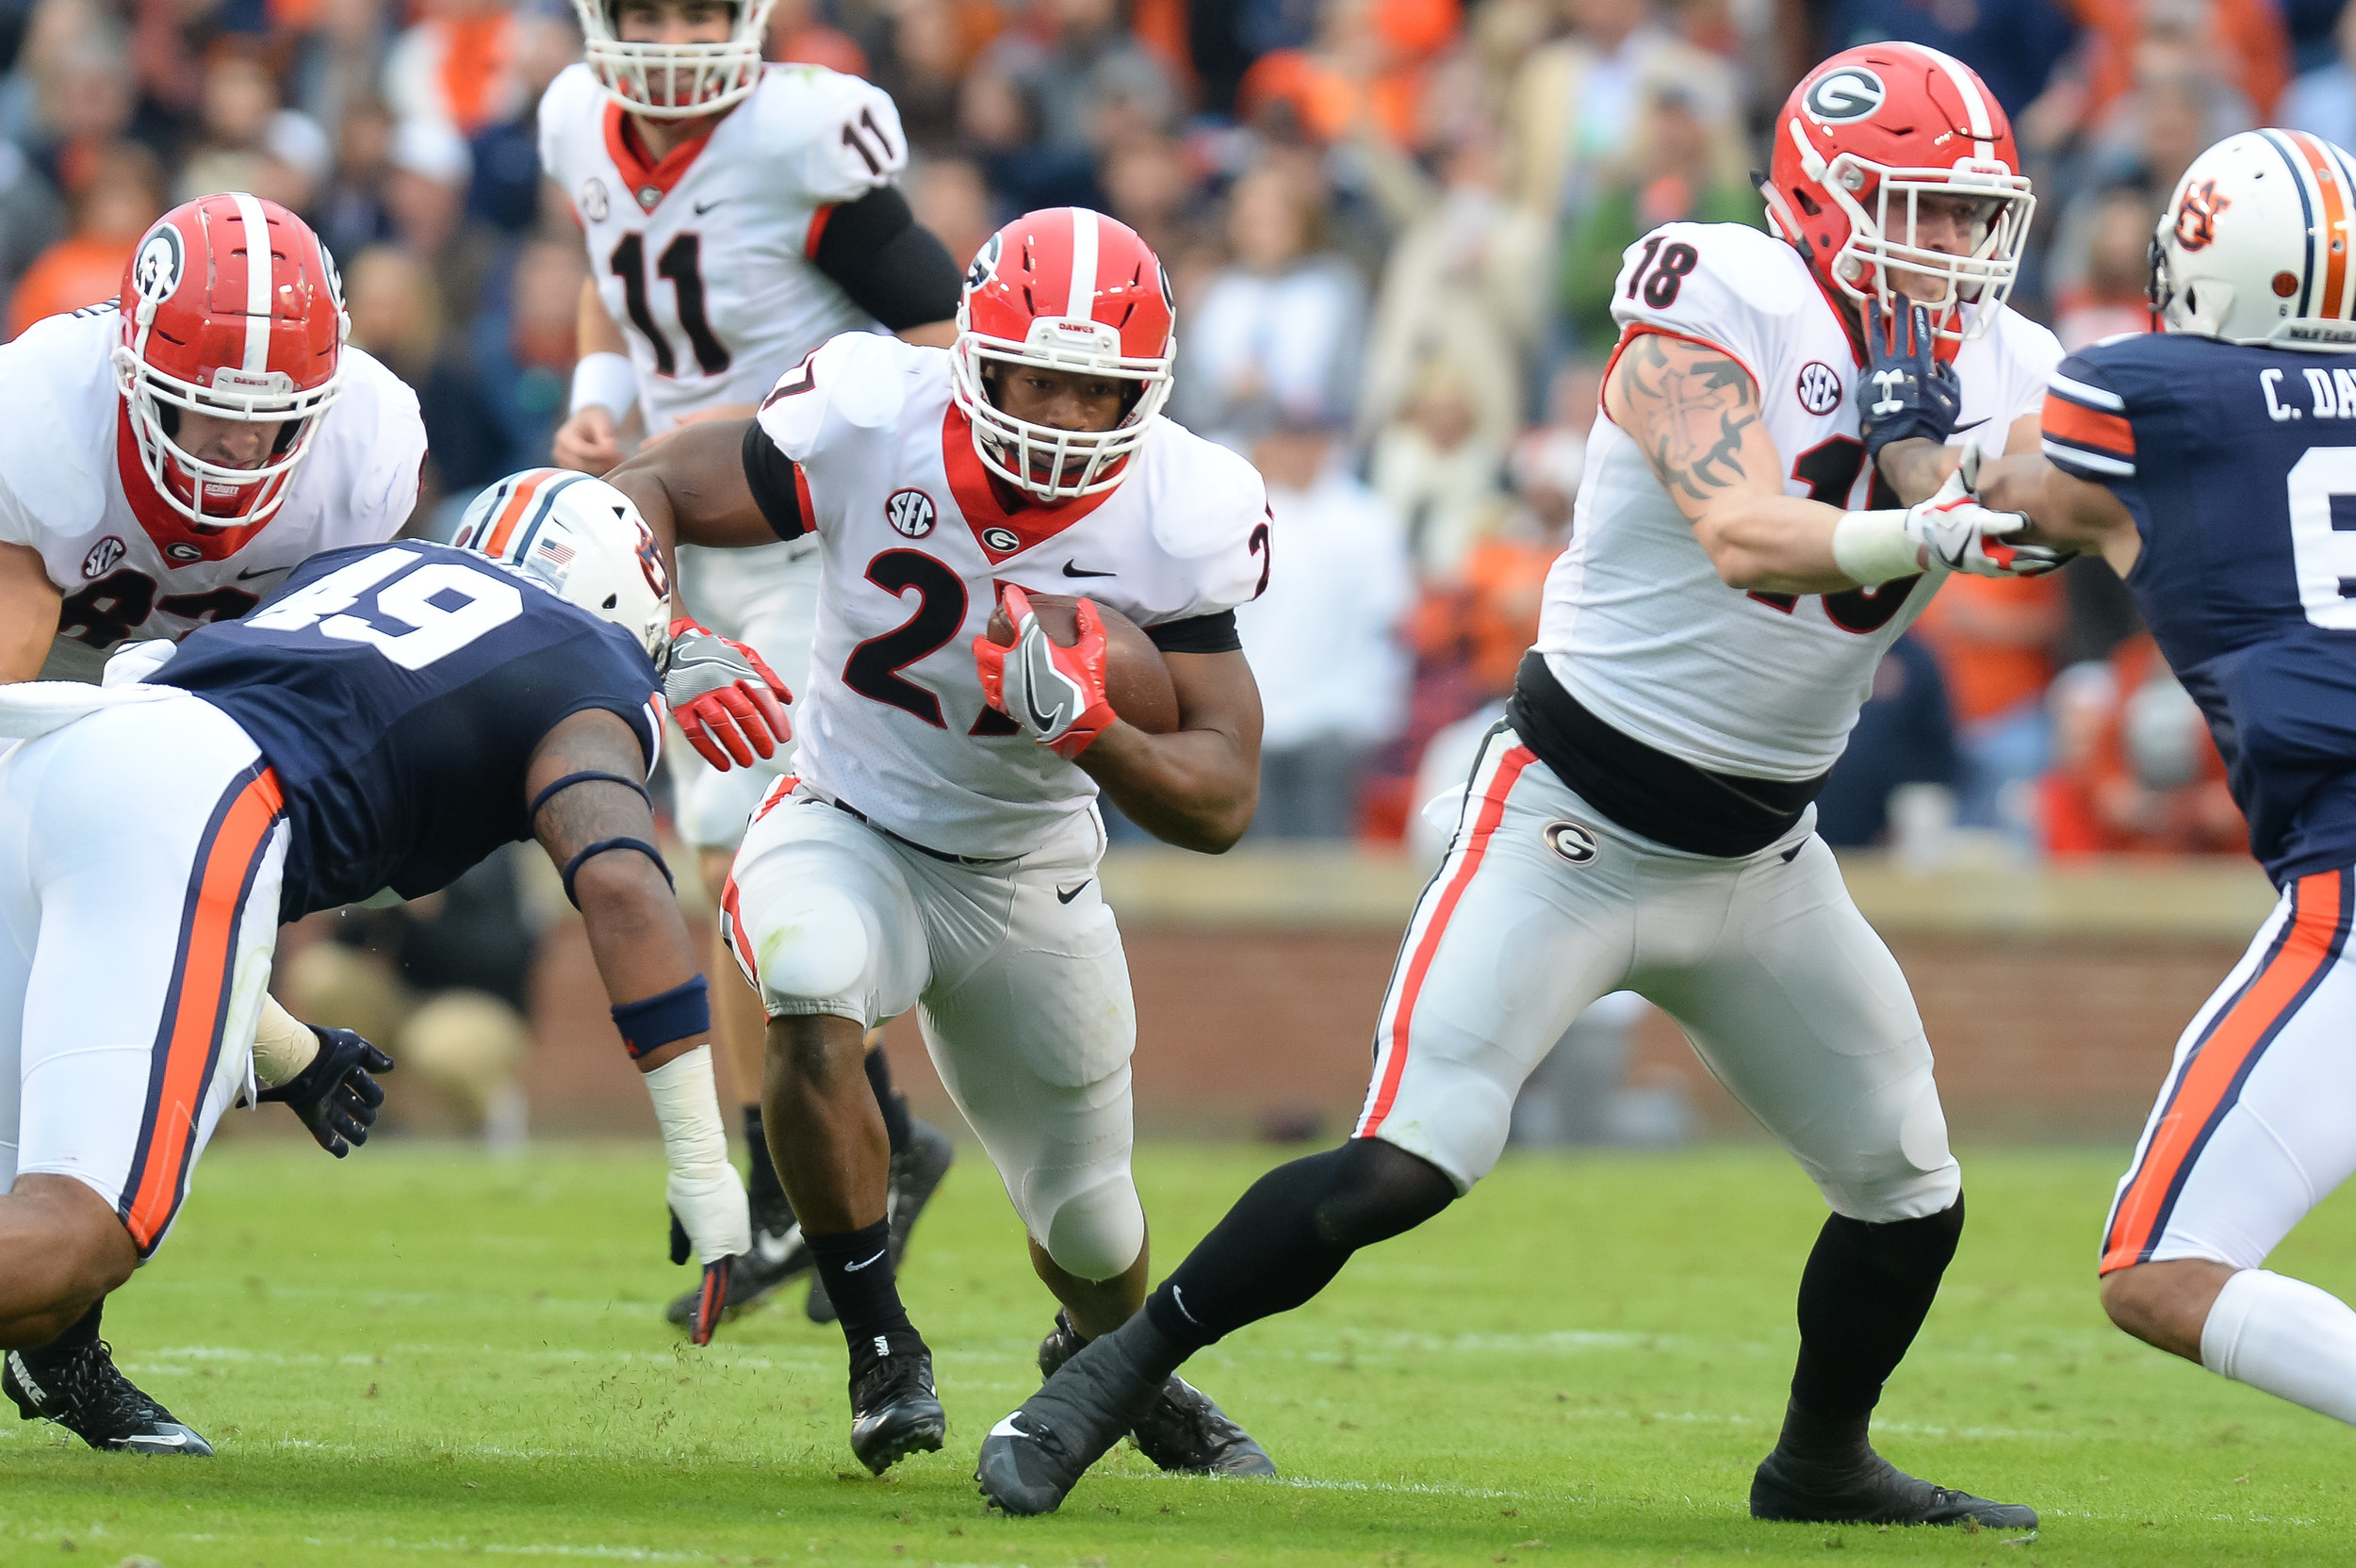 Georgia Bulldogs running back Nick Chubb (27) tries to get past Auburn Tigers linebacker Darrell Williams (49) during the first half of Saturday's game, at Jordan-Hare Stadium.